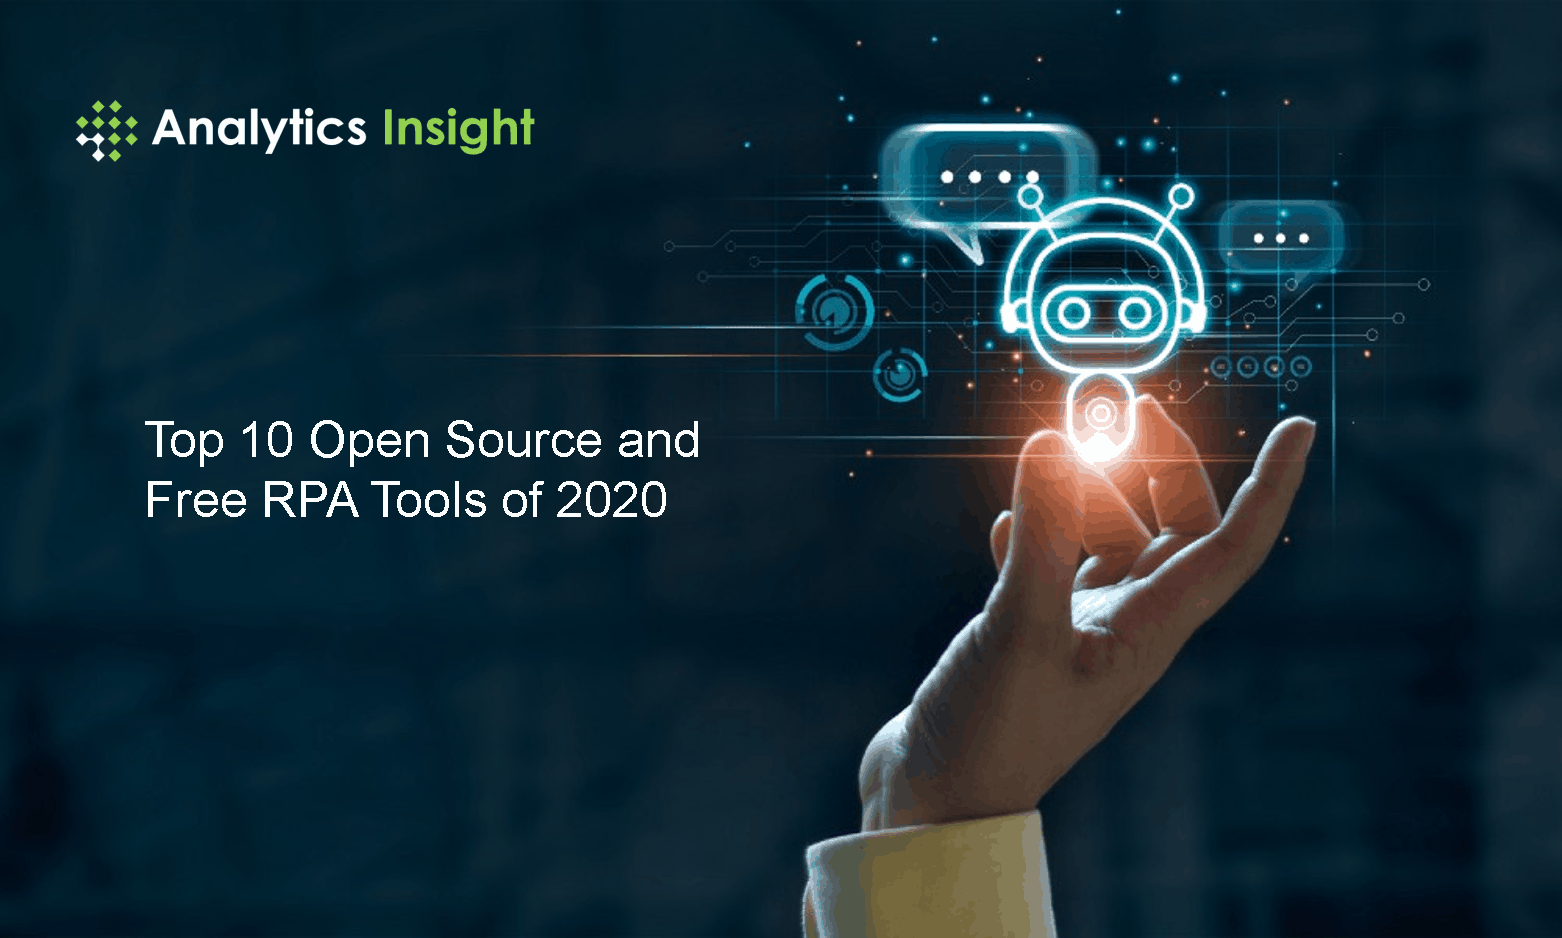 Top 10 Open Source and Free RPA Tools of 2020